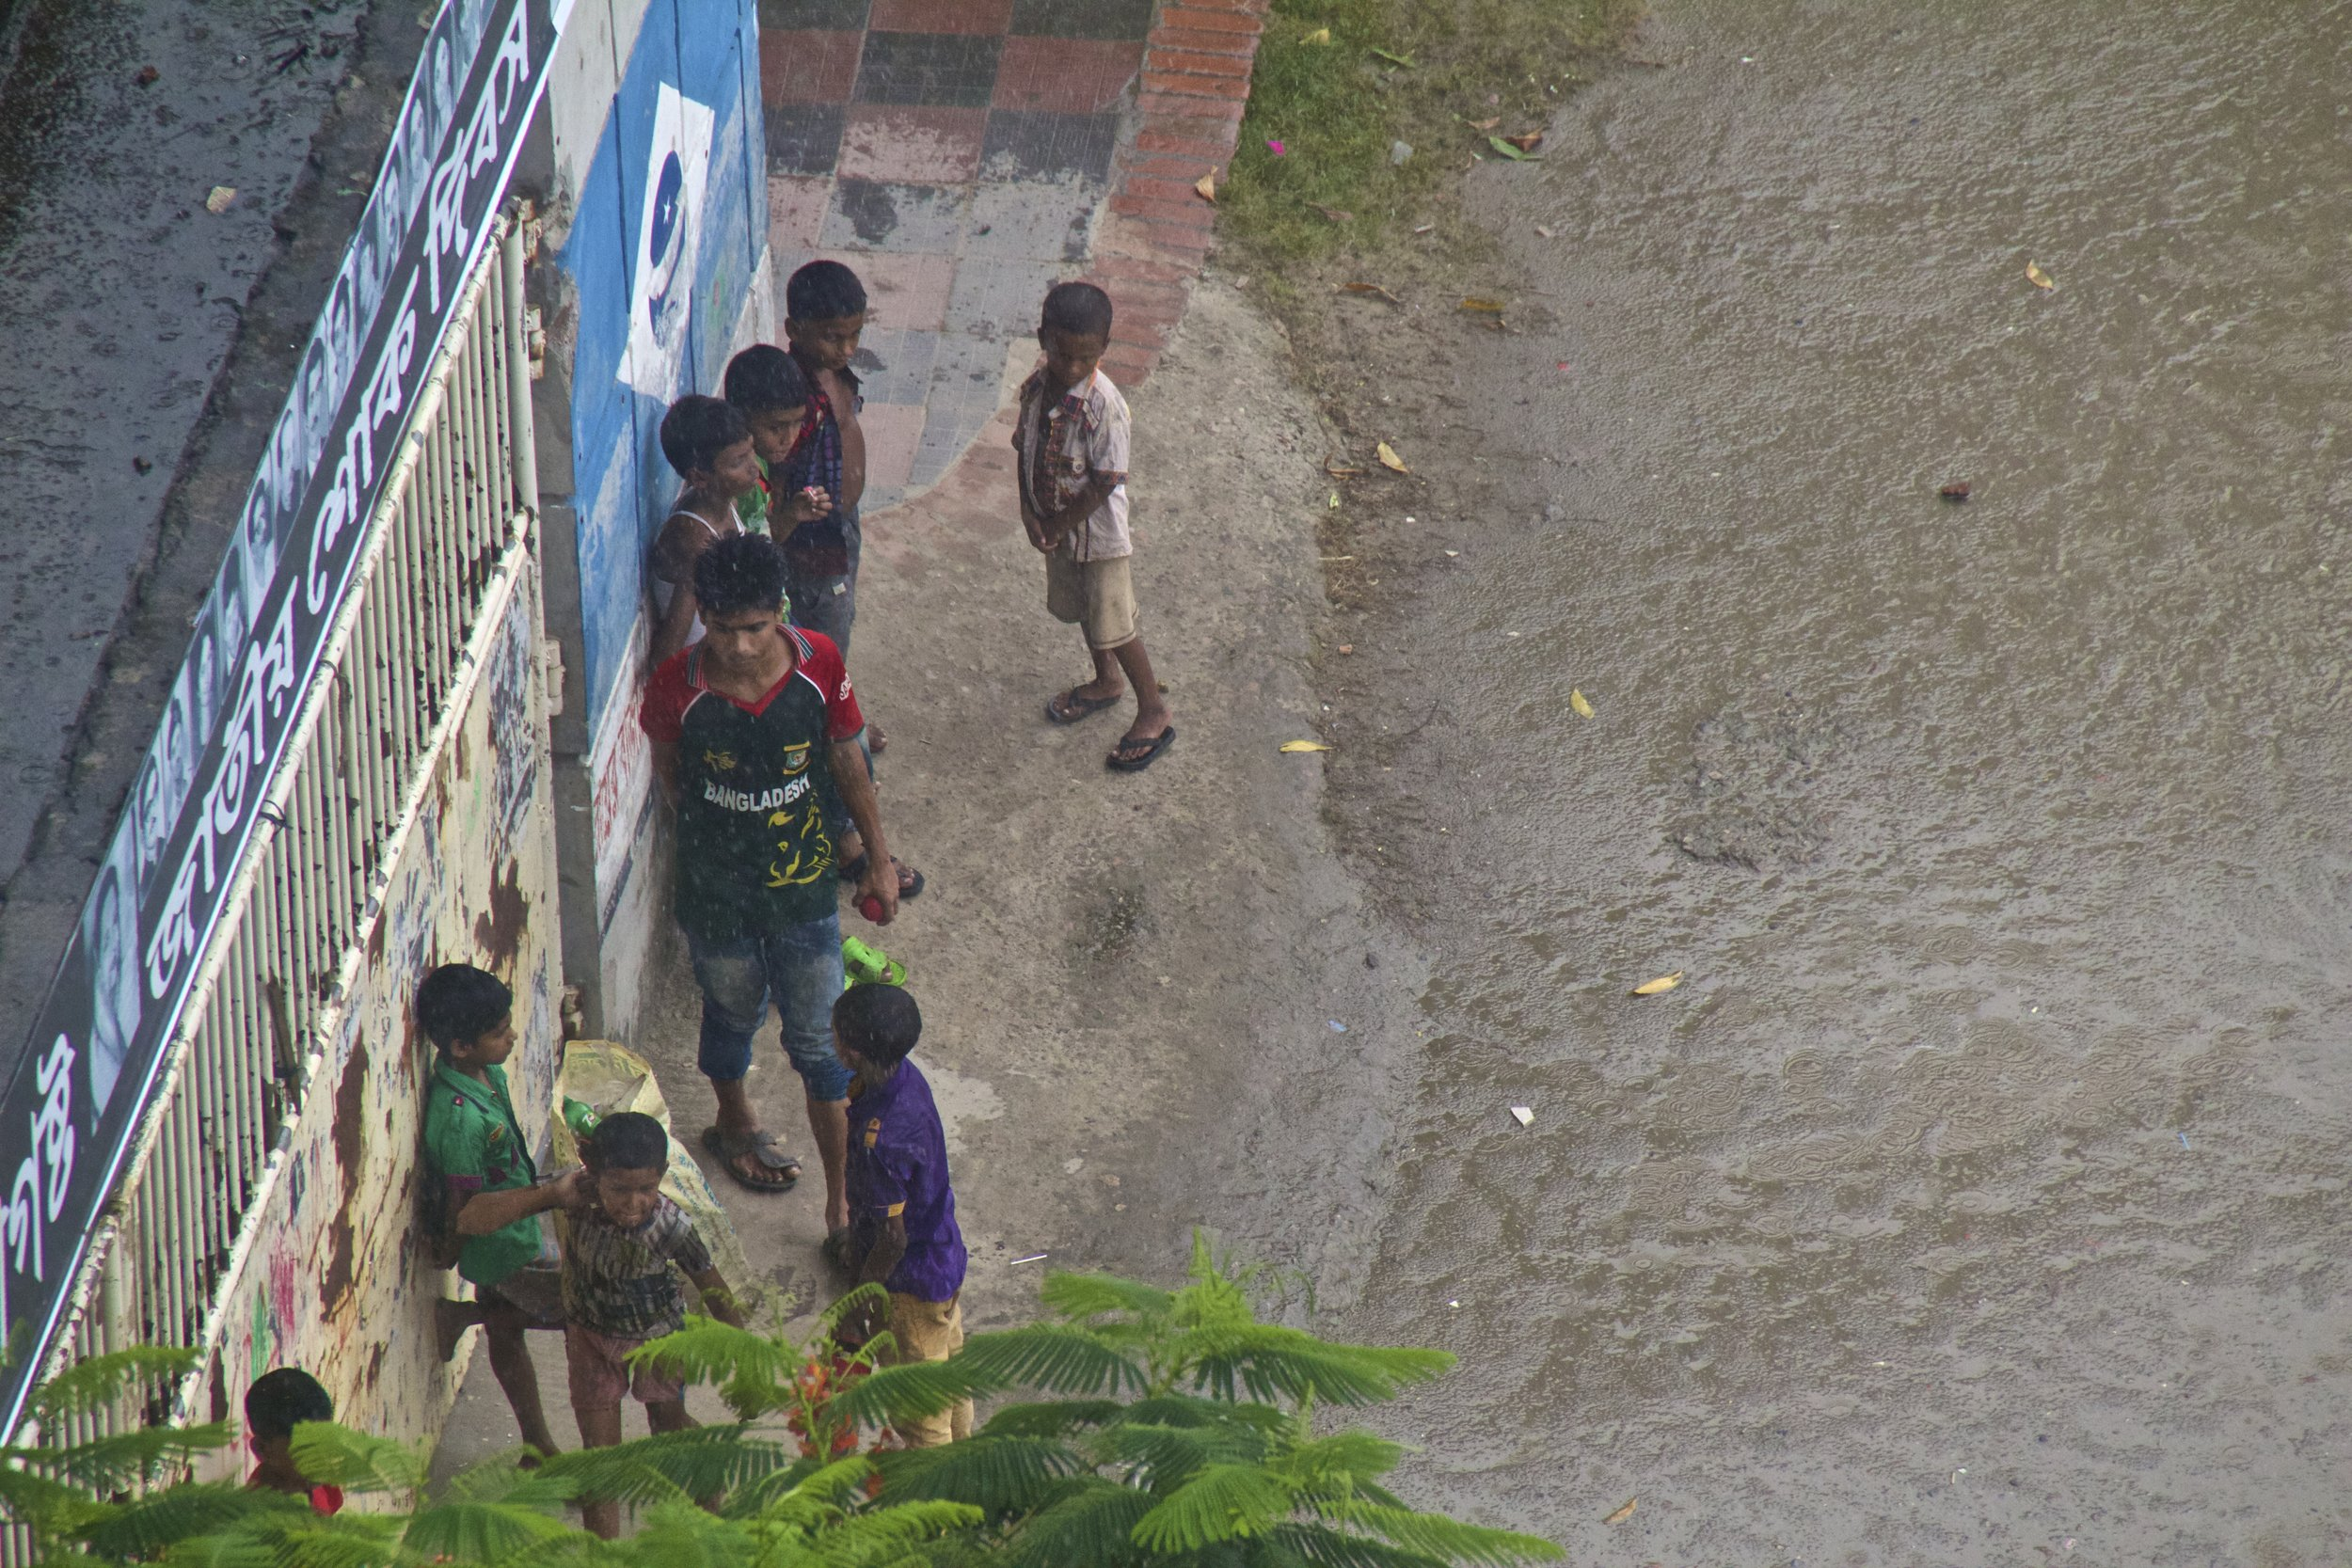 dhaka bangladesh slums monsoon rain 6.jpg